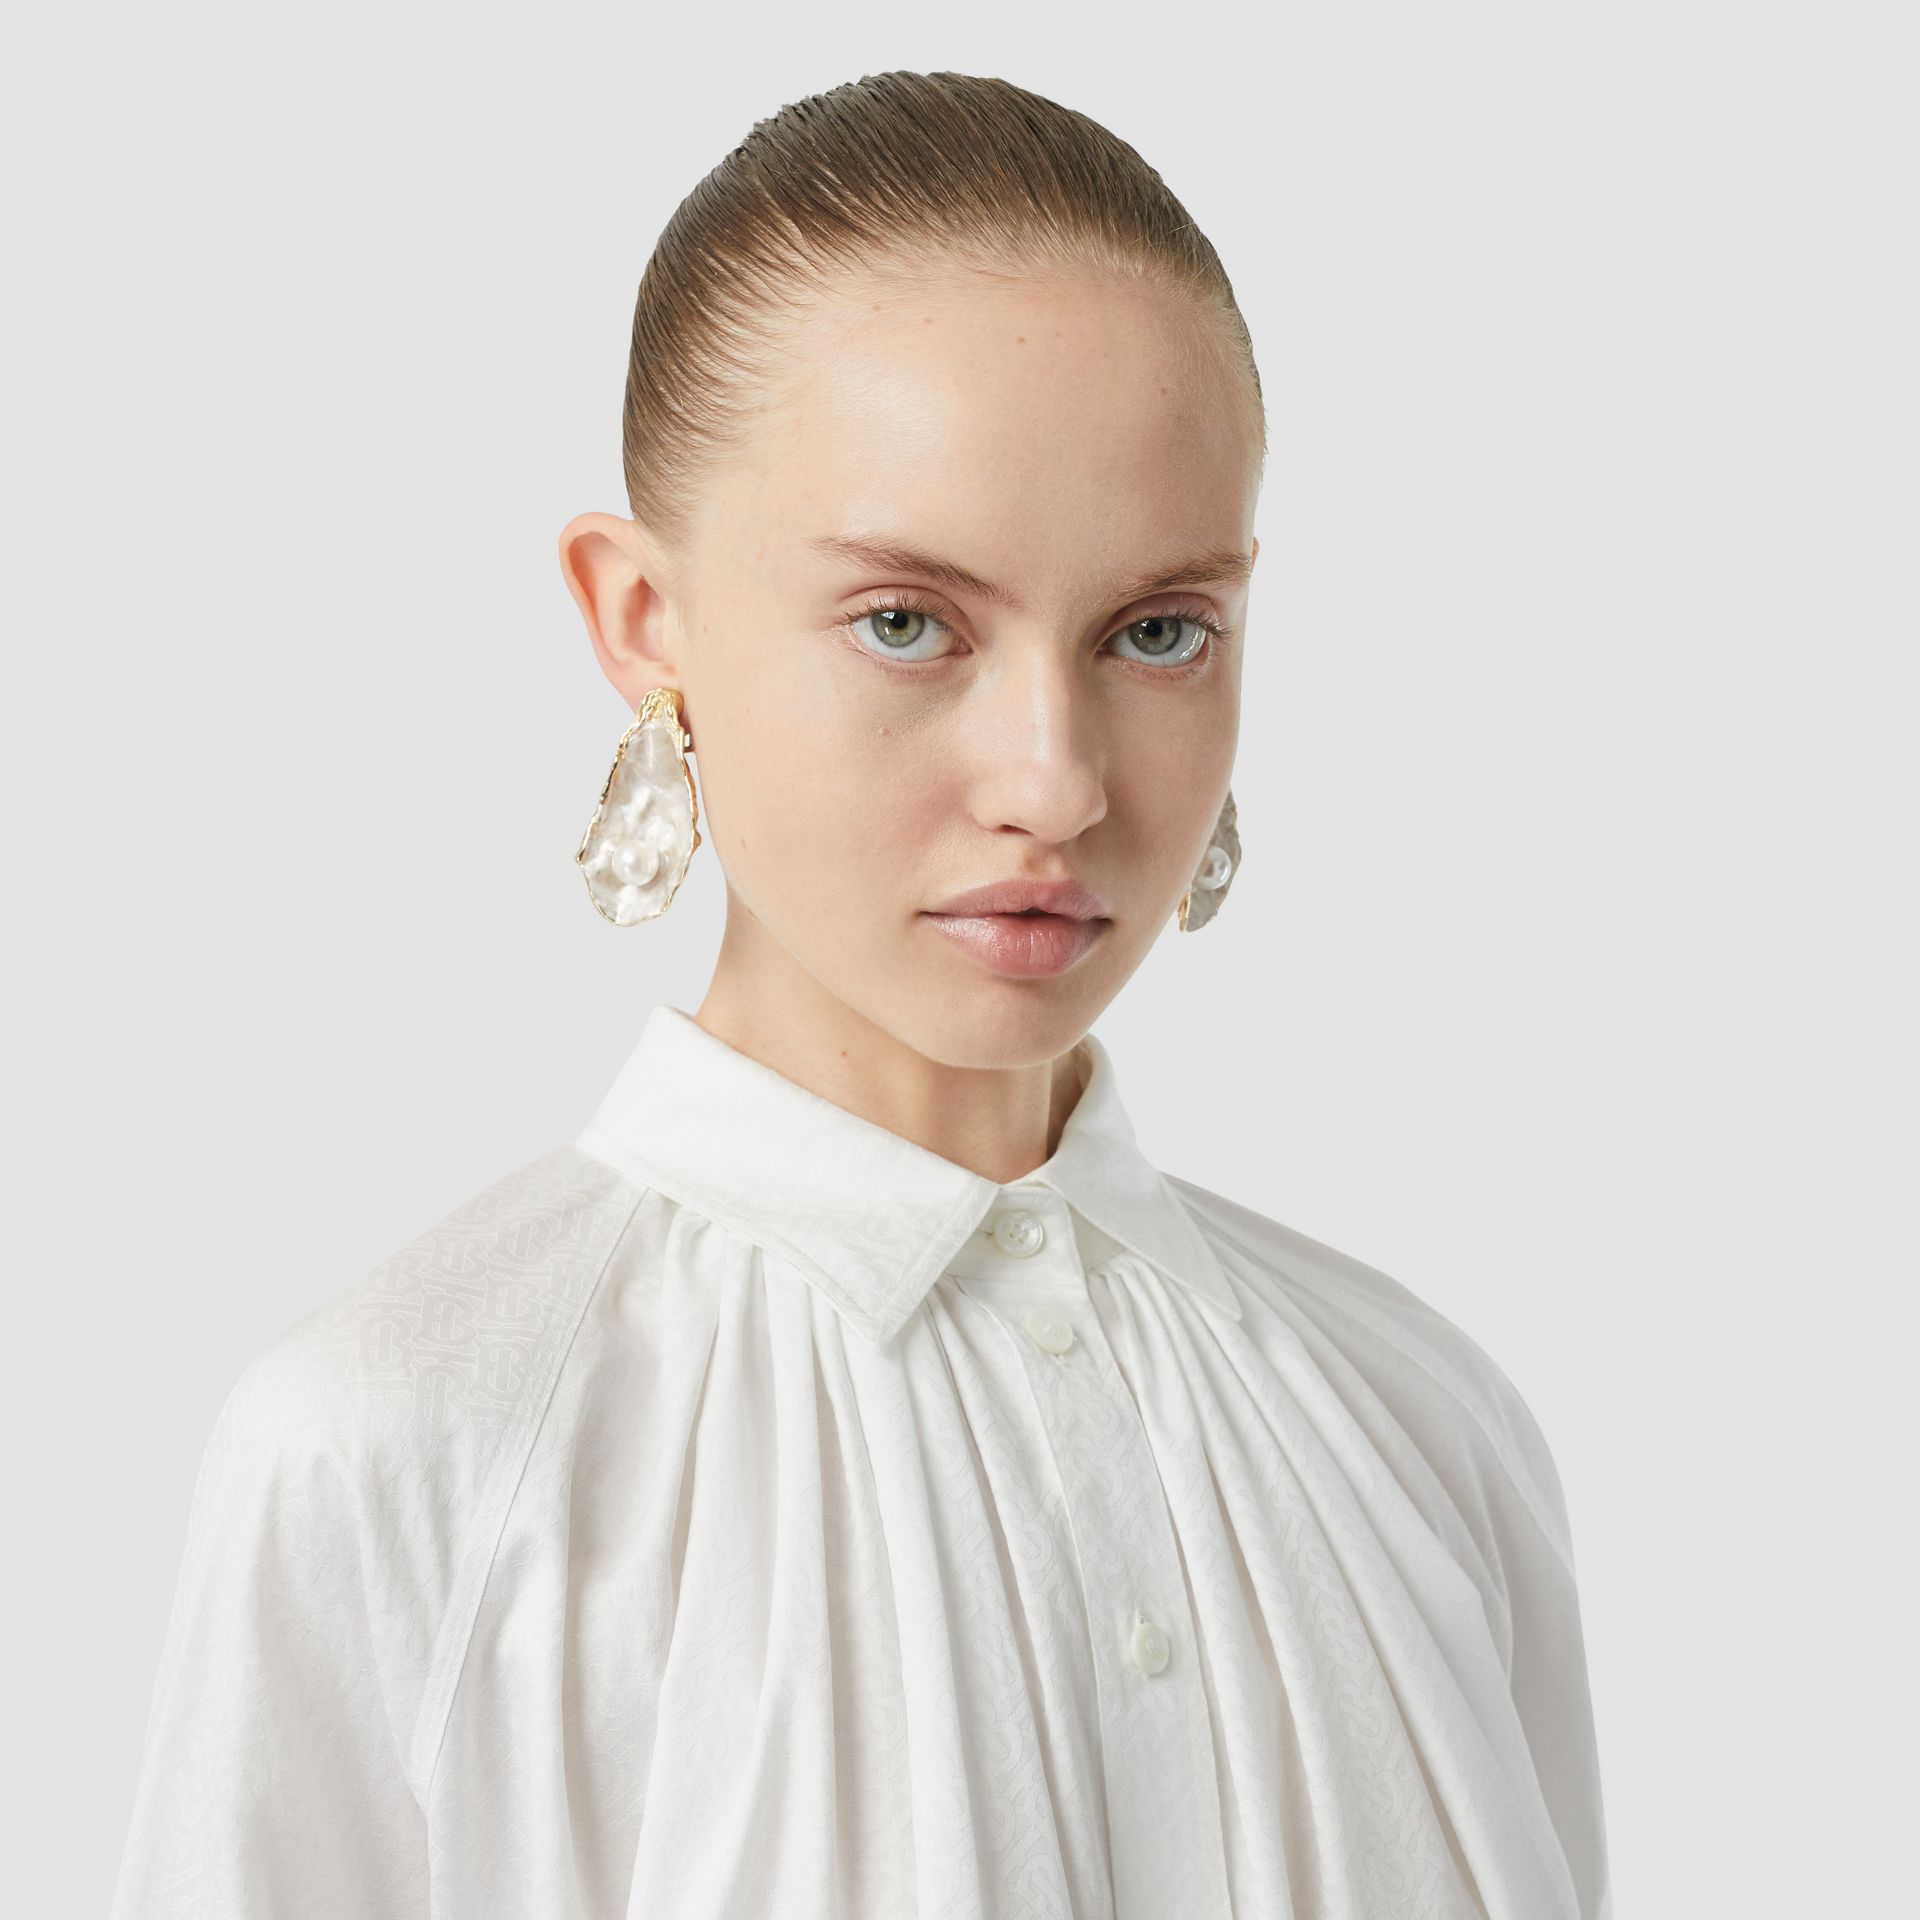 Monogram Cotton Jacquard Oversized Shirt in Optic White - Women | Burberry Singapore - gallery image 6